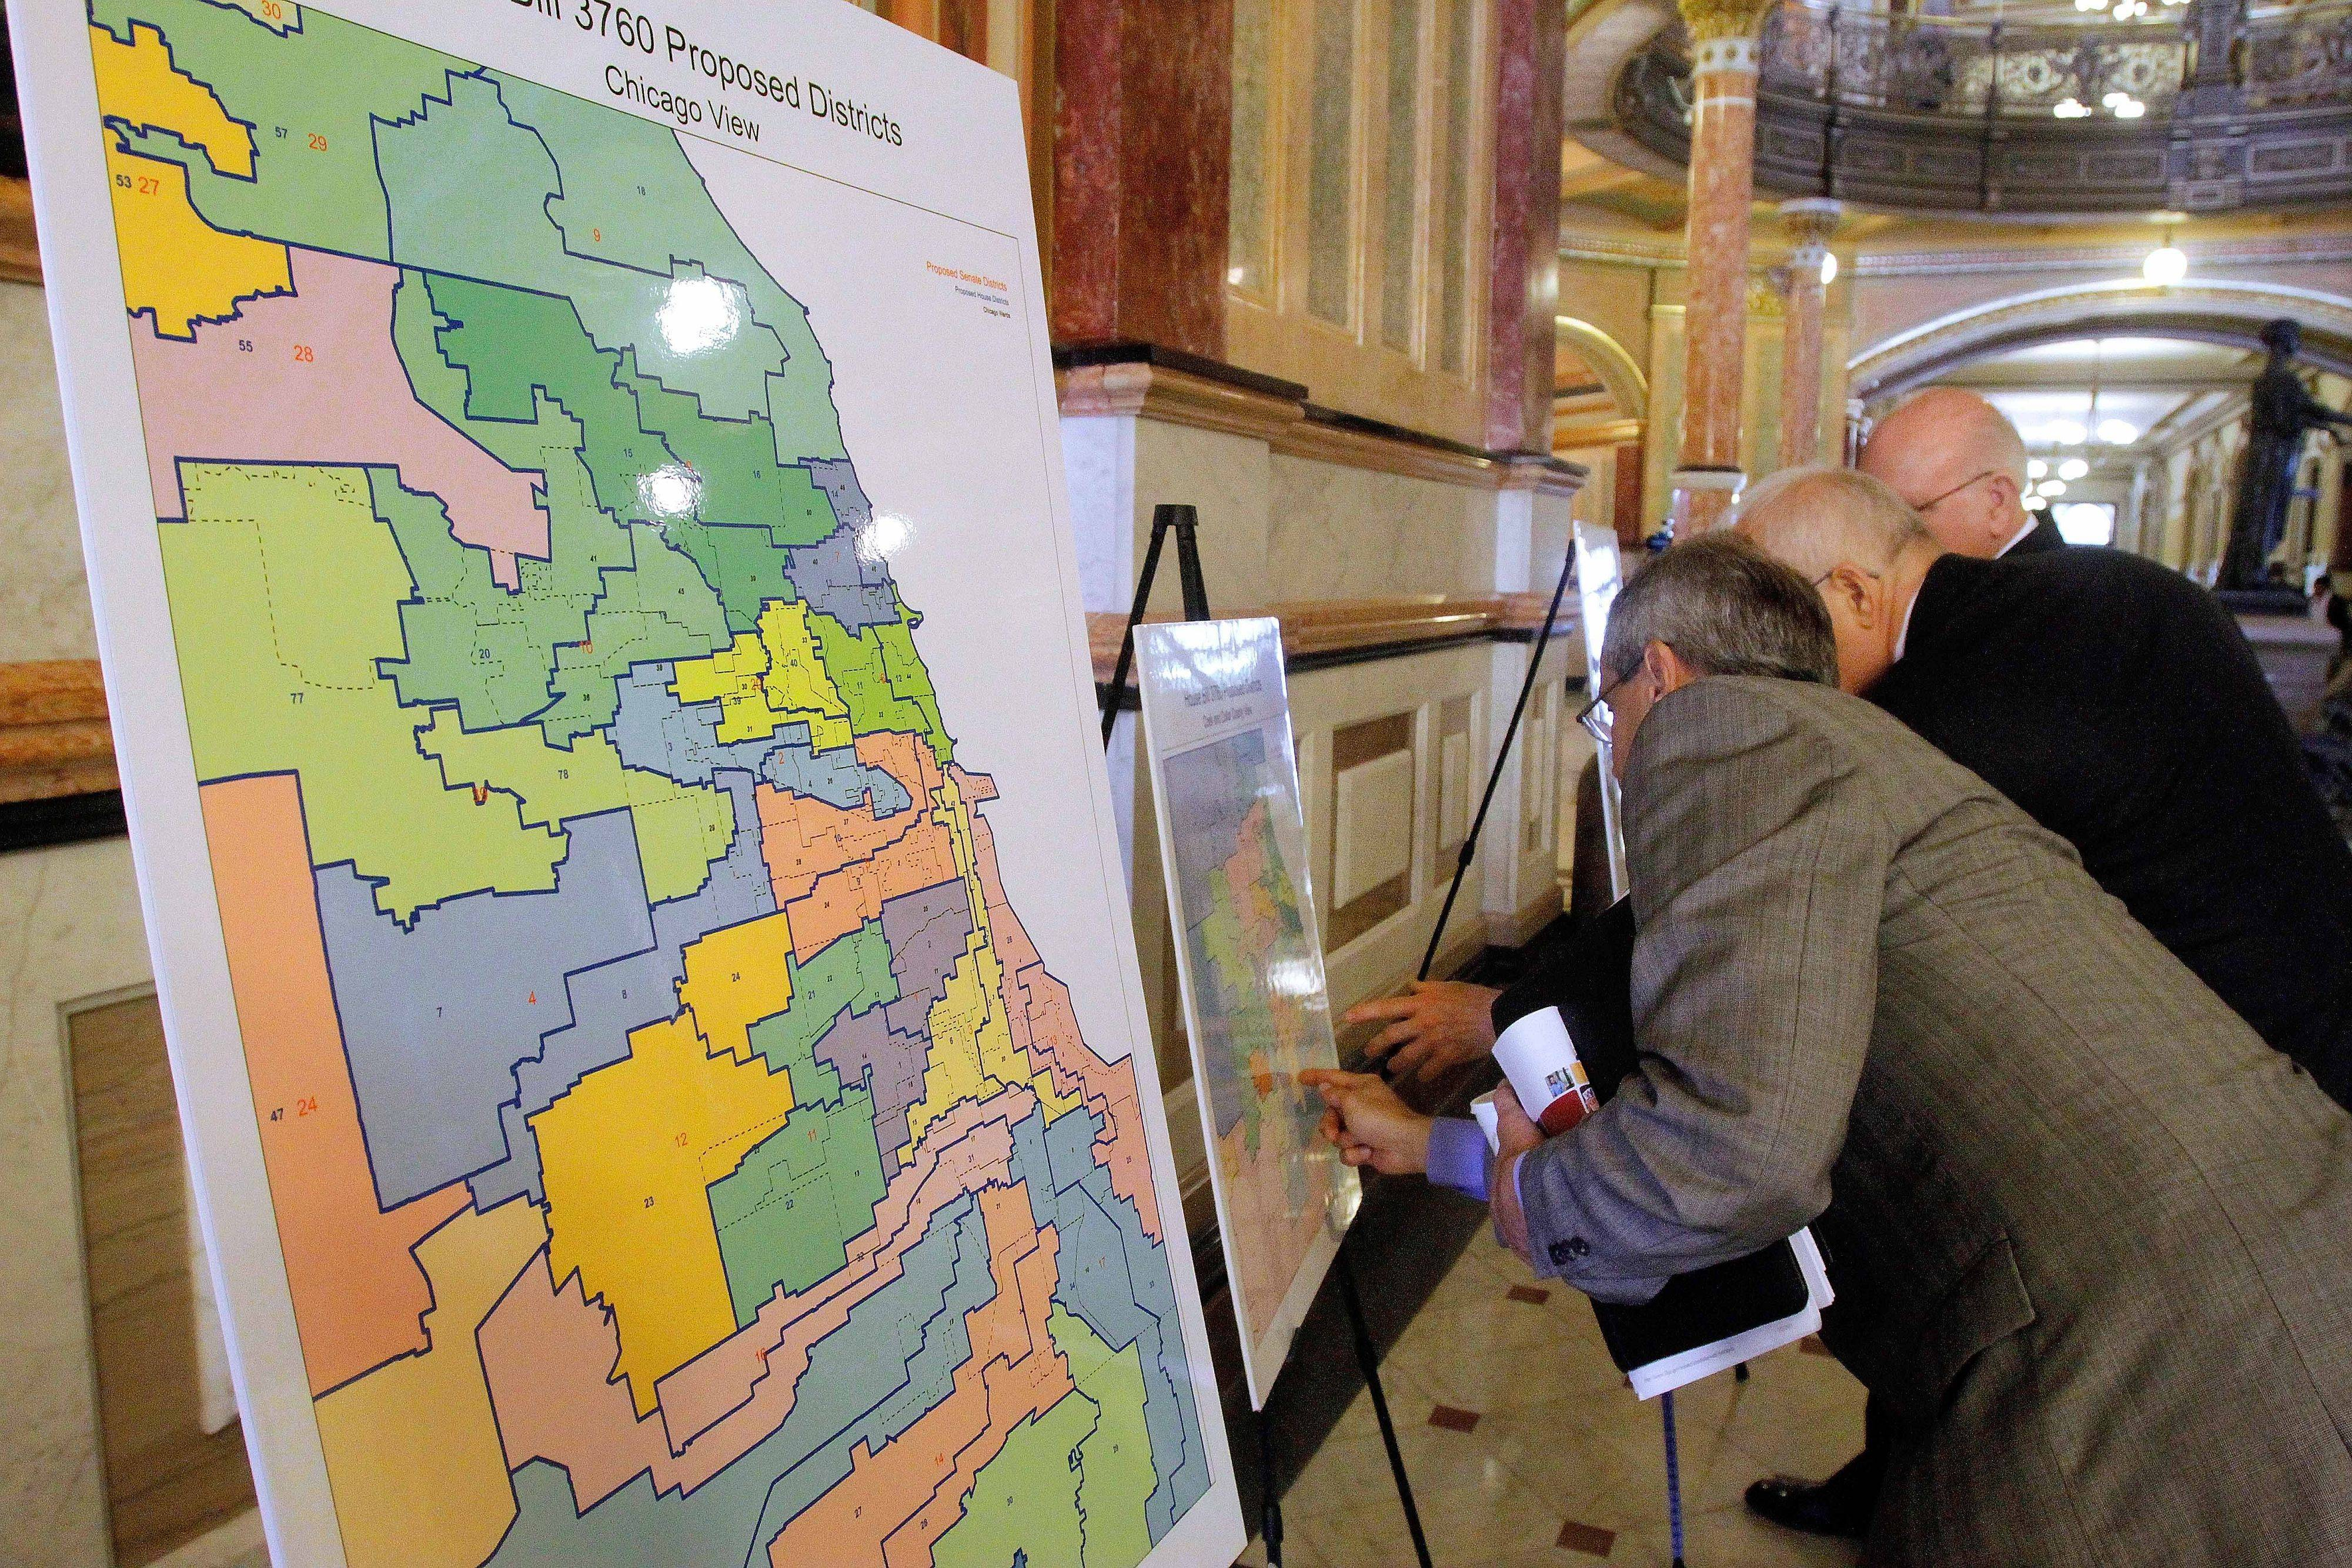 Newly proposed redistricting maps are displayed in the hallways of the Capitol in Springfield.